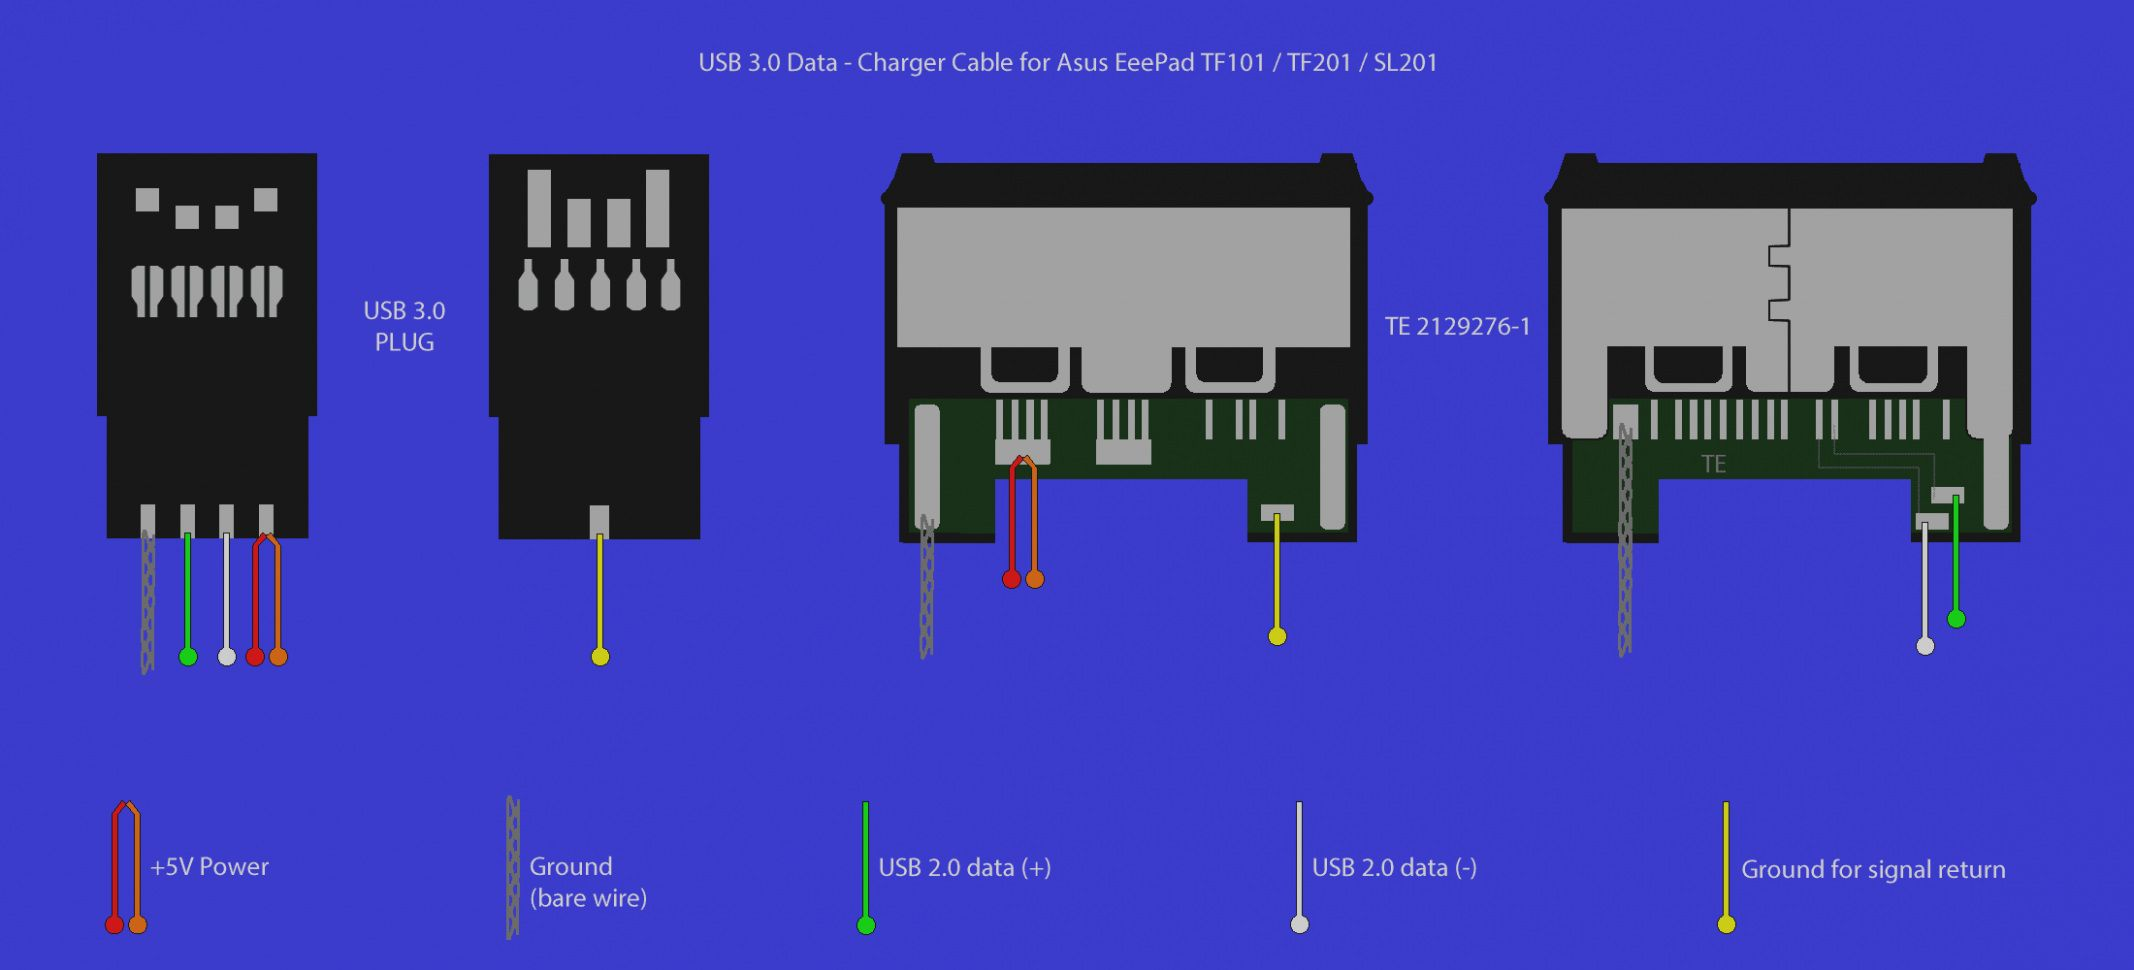 Awesome Of Sata To Usb Cable Wiring Diagram Tf101g Charger Broke Need Urgent A Pg 2 Asus Eee Pad 4 Asus Transformer Usb Asus